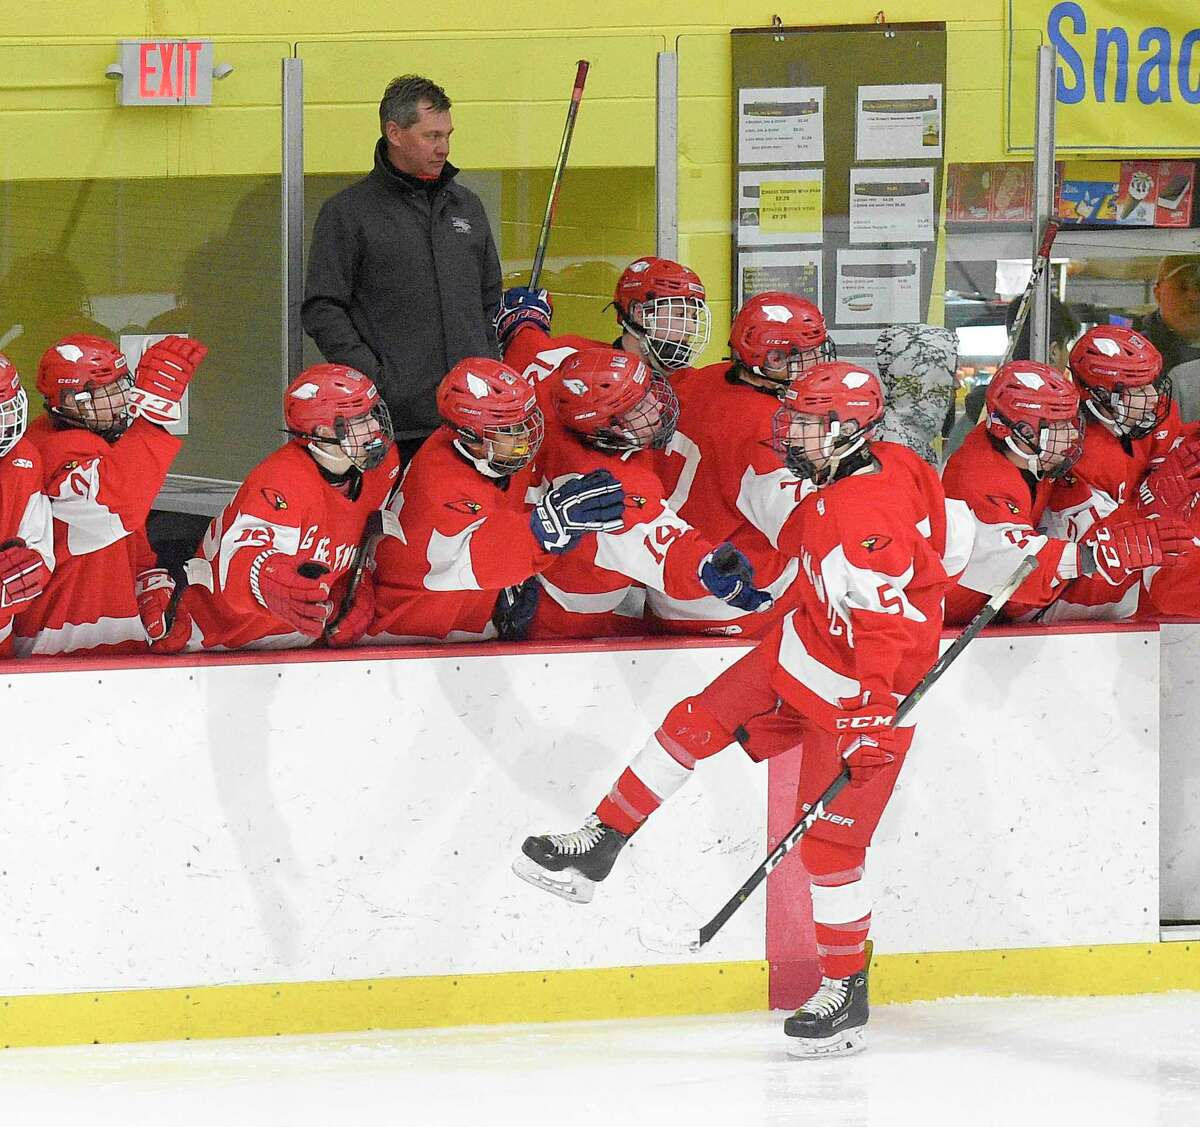 Greenwich coach Chris Rurak watches as players react to a goal against the Stamford-Westhill Co-op in a FCIAC boys hockey game at Terry Connors Ice Rink in January.